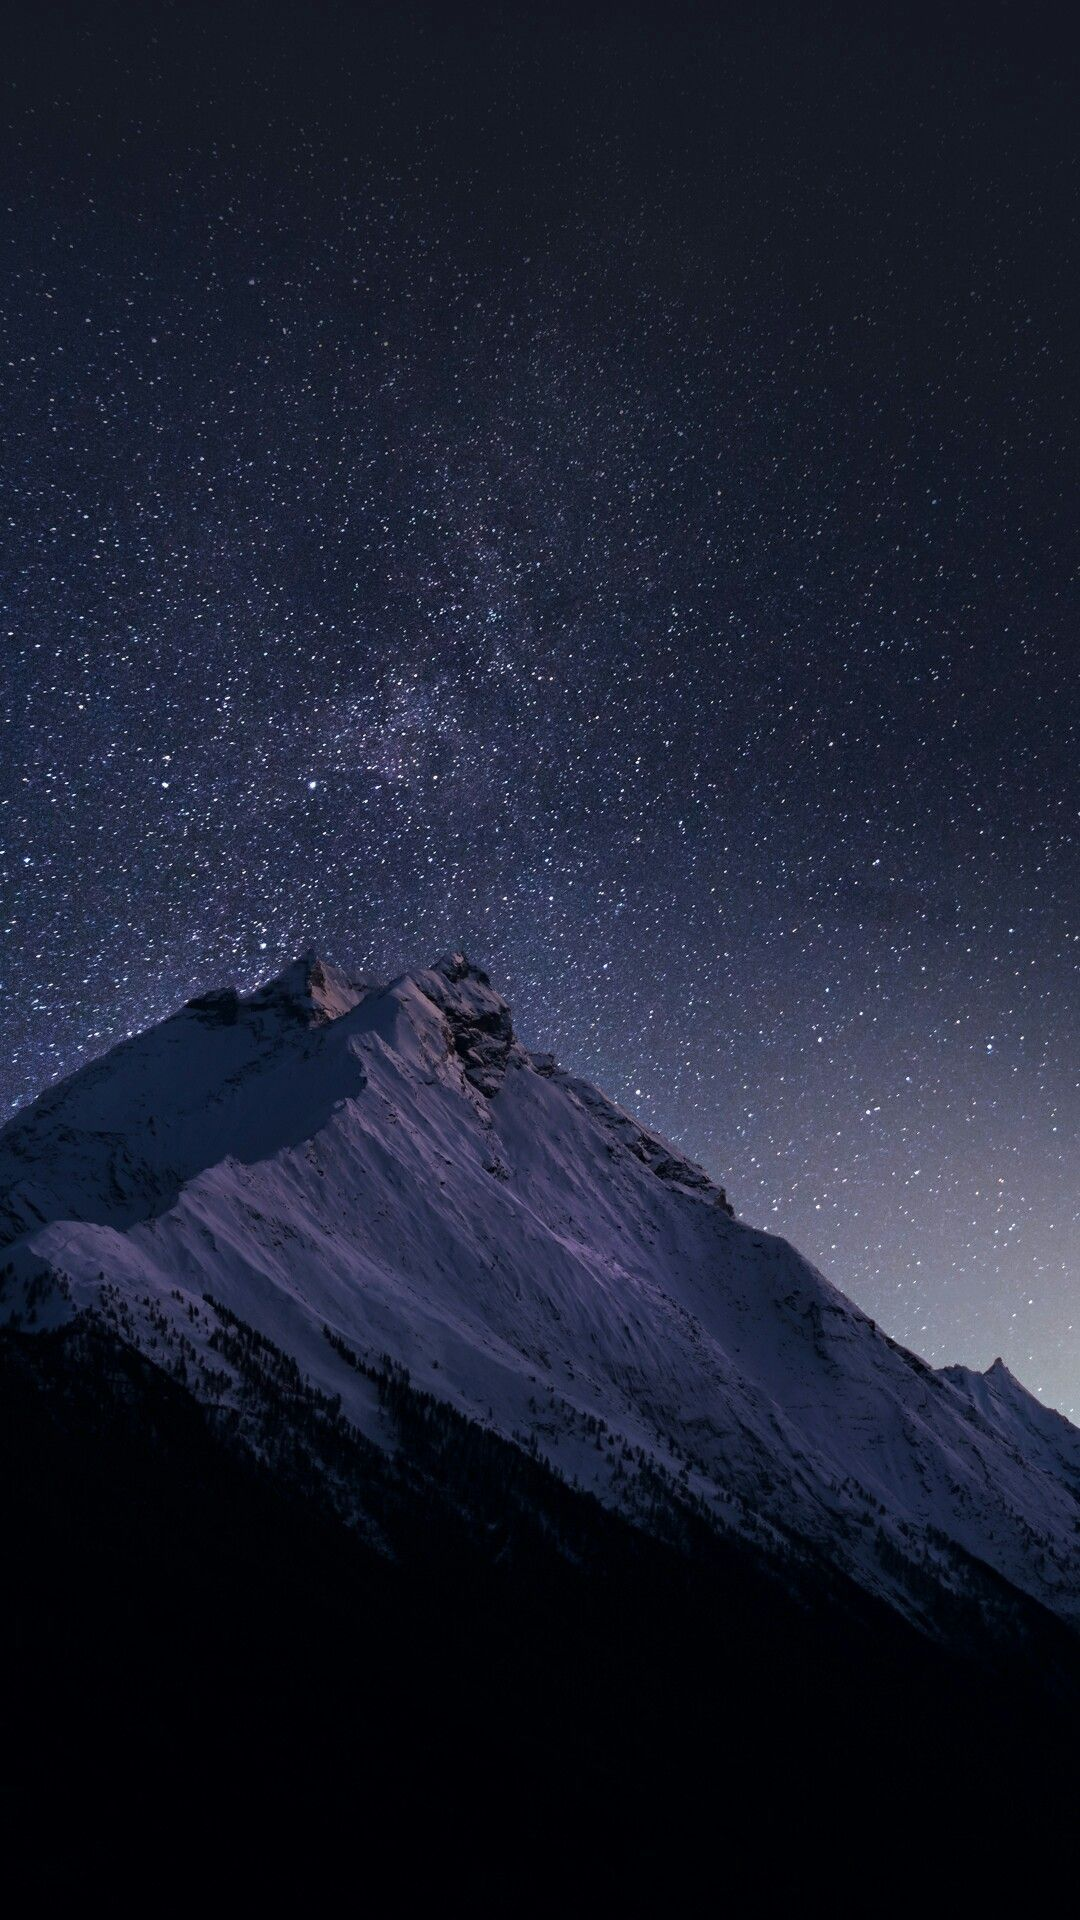 Night Mountain Iphone Background In 2020 Mountain Wallpaper